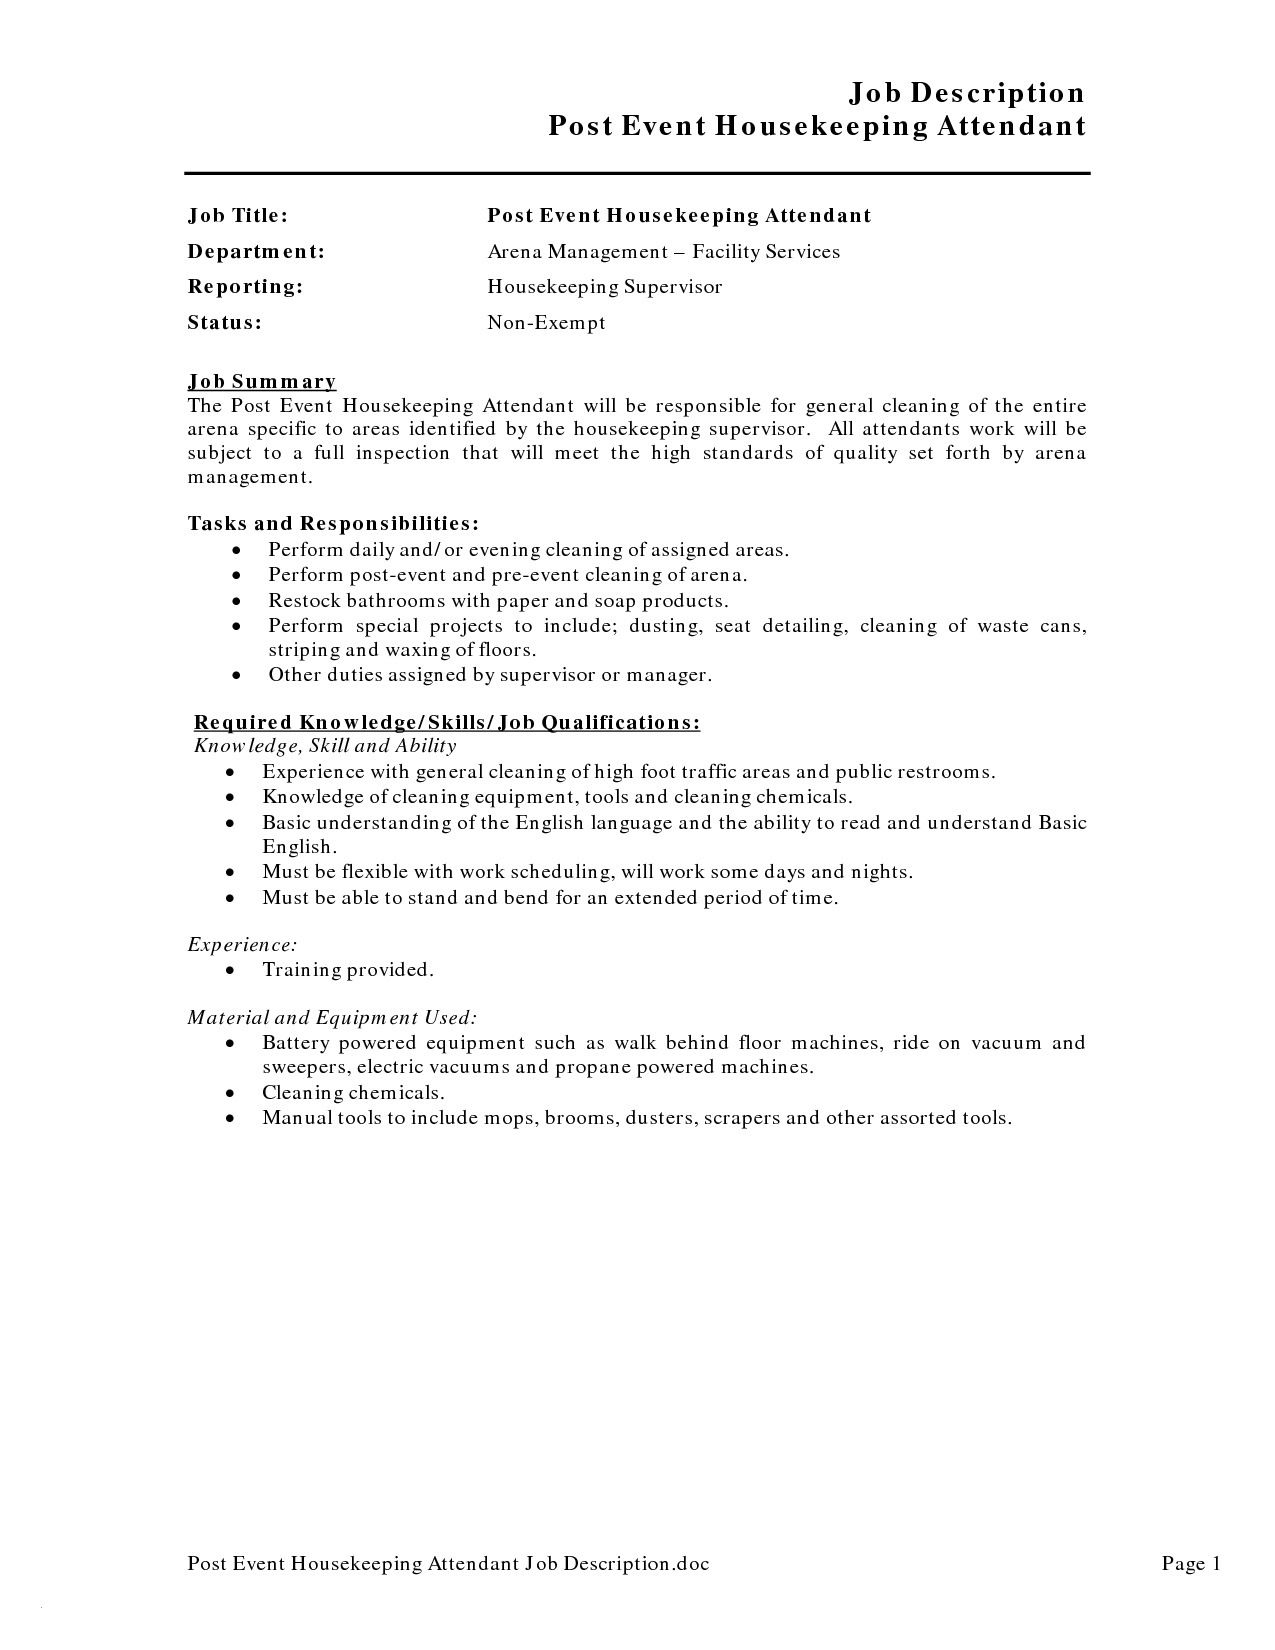 Sample Of Housekeeping Resume - Hotel Housekeeping Job Description for Resume Best Hotel